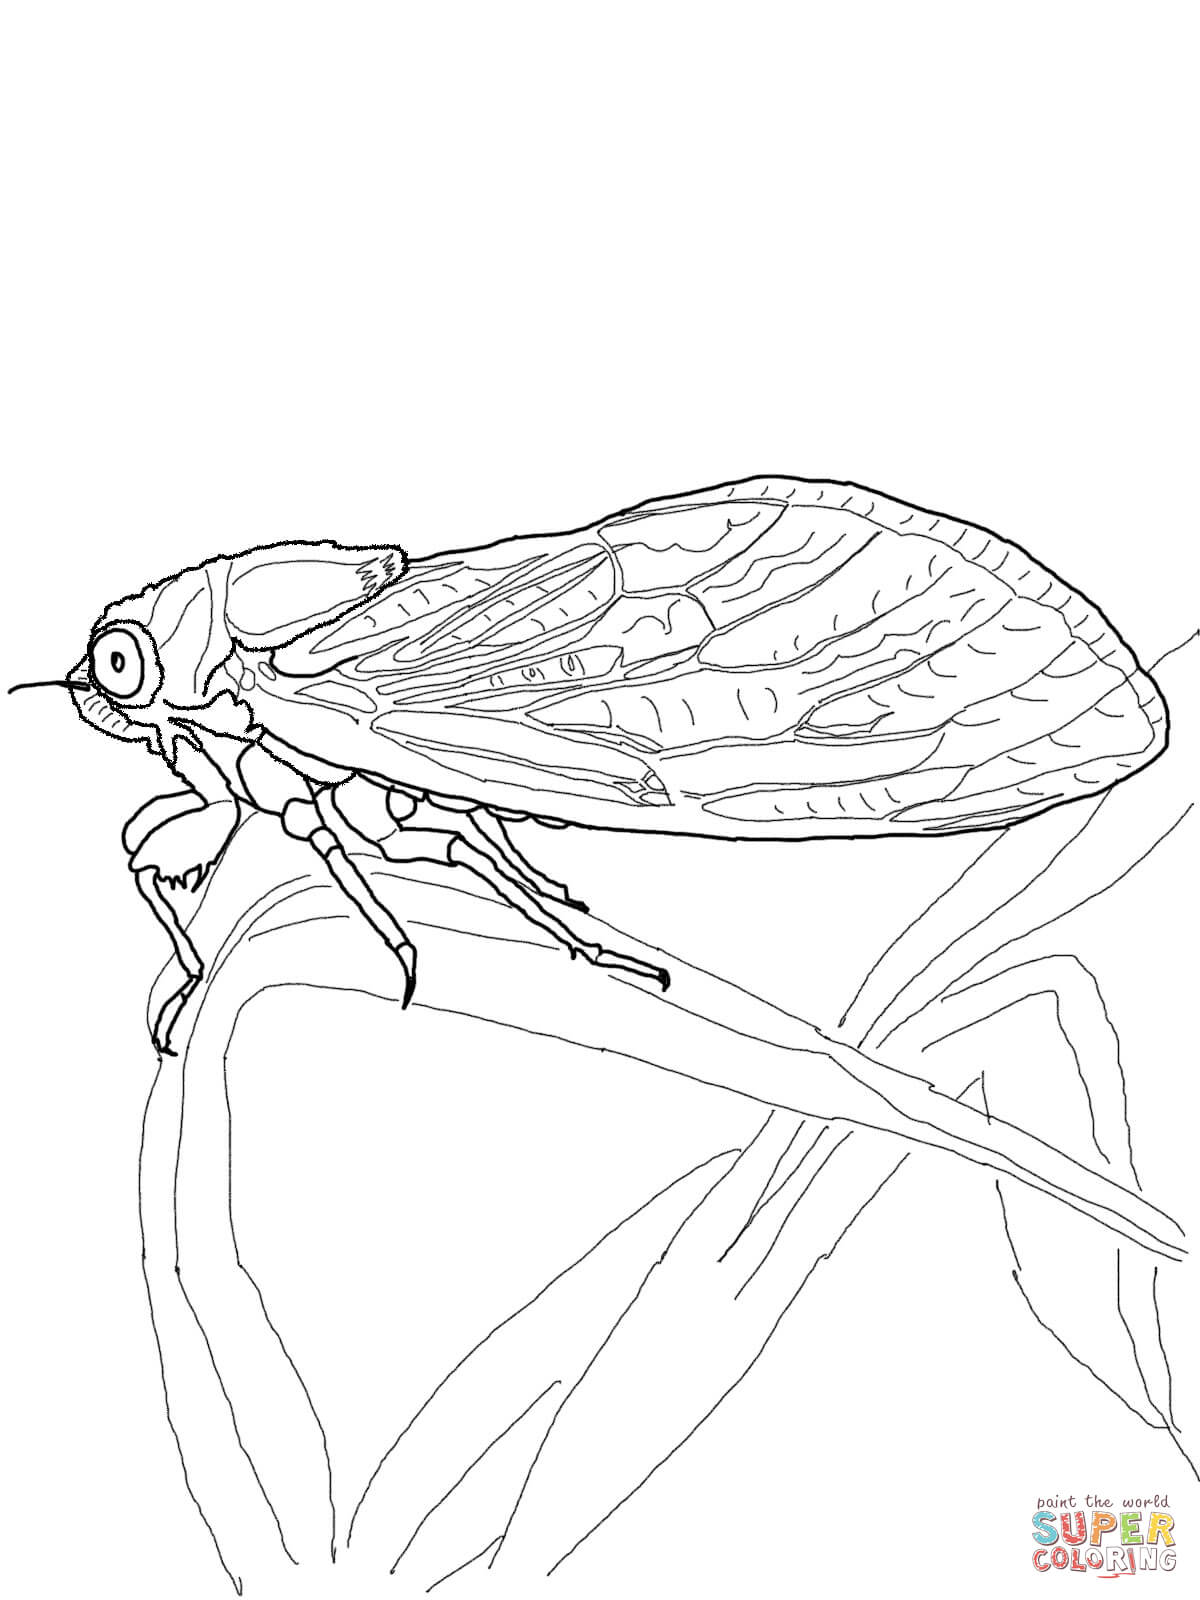 Cicada coloring #12, Download drawings